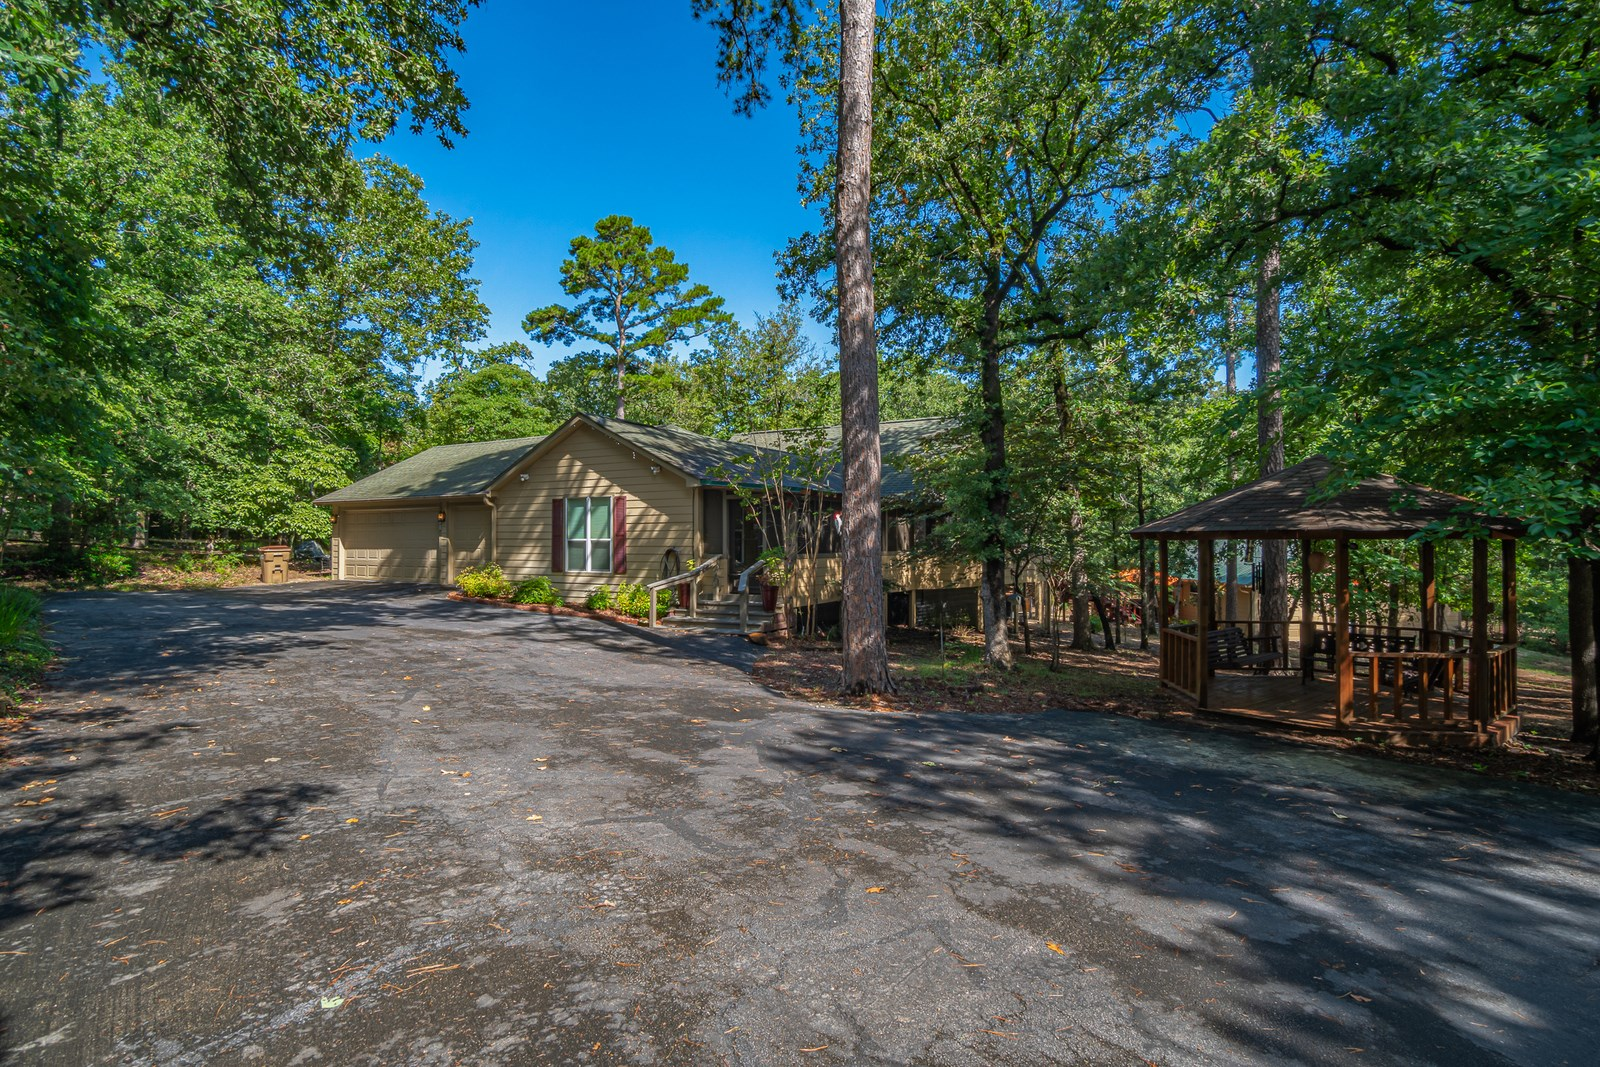 EAST TEXAS HOME 1.5 ACRES HOLLY LAKE RANCH, TX  3/3/2  SHOP